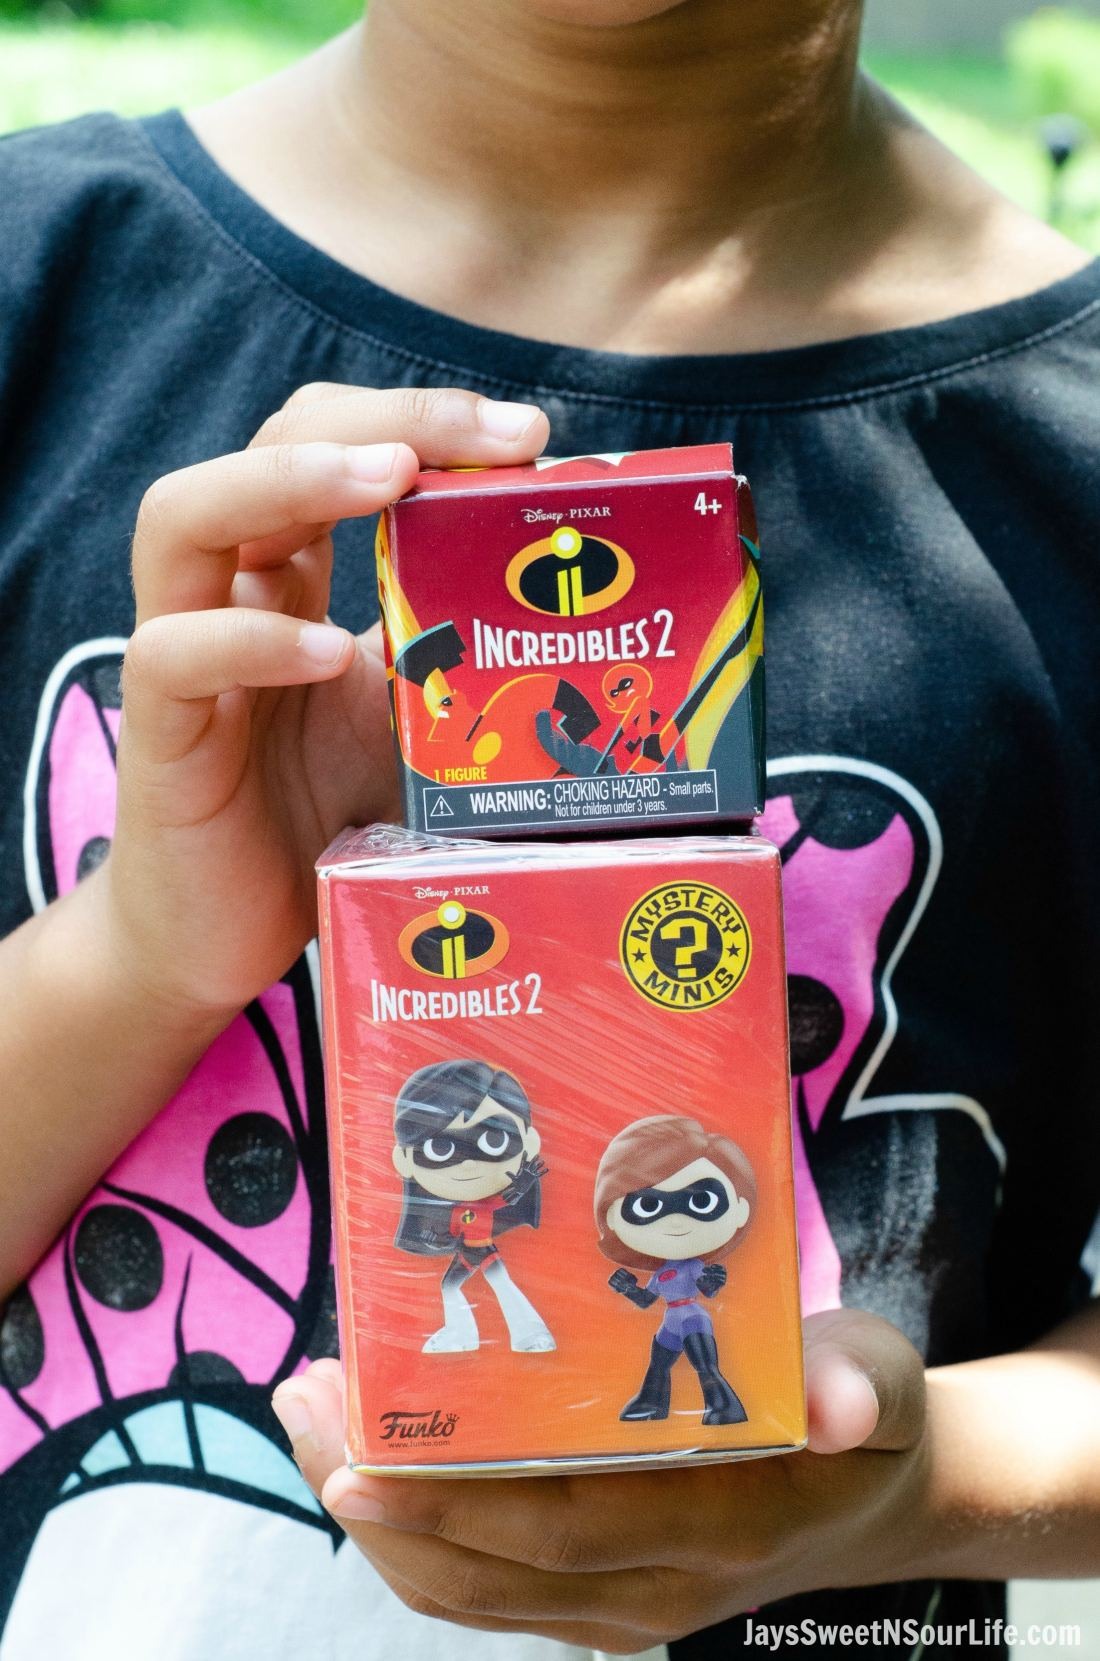 Incredibles 2 Mystery Mini Figurines. New Disney Pixars Incredibles 2 Toys + More | Incredibles 2 Gift Guide